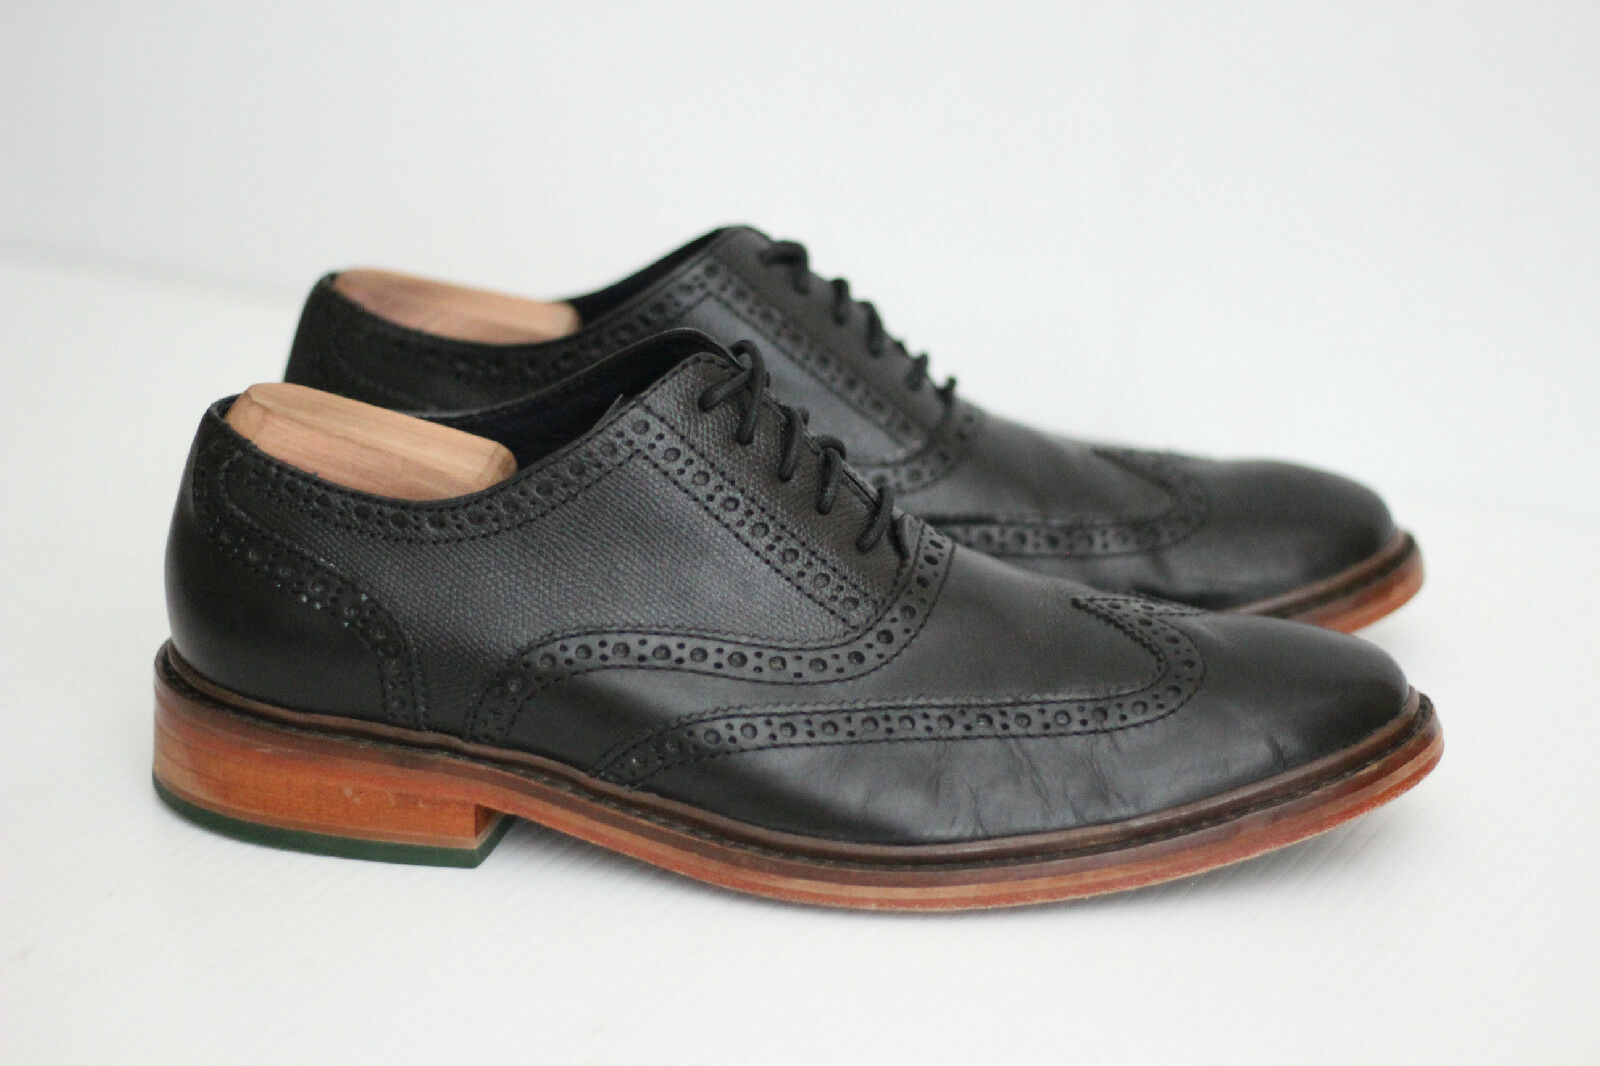 vendita con alto sconto Mens Cole Haan 'Colton' Wingtip Wingtip Wingtip Oxfords - nero - Dimensione 11.5 M - C11756 (Q65)  profitto zero